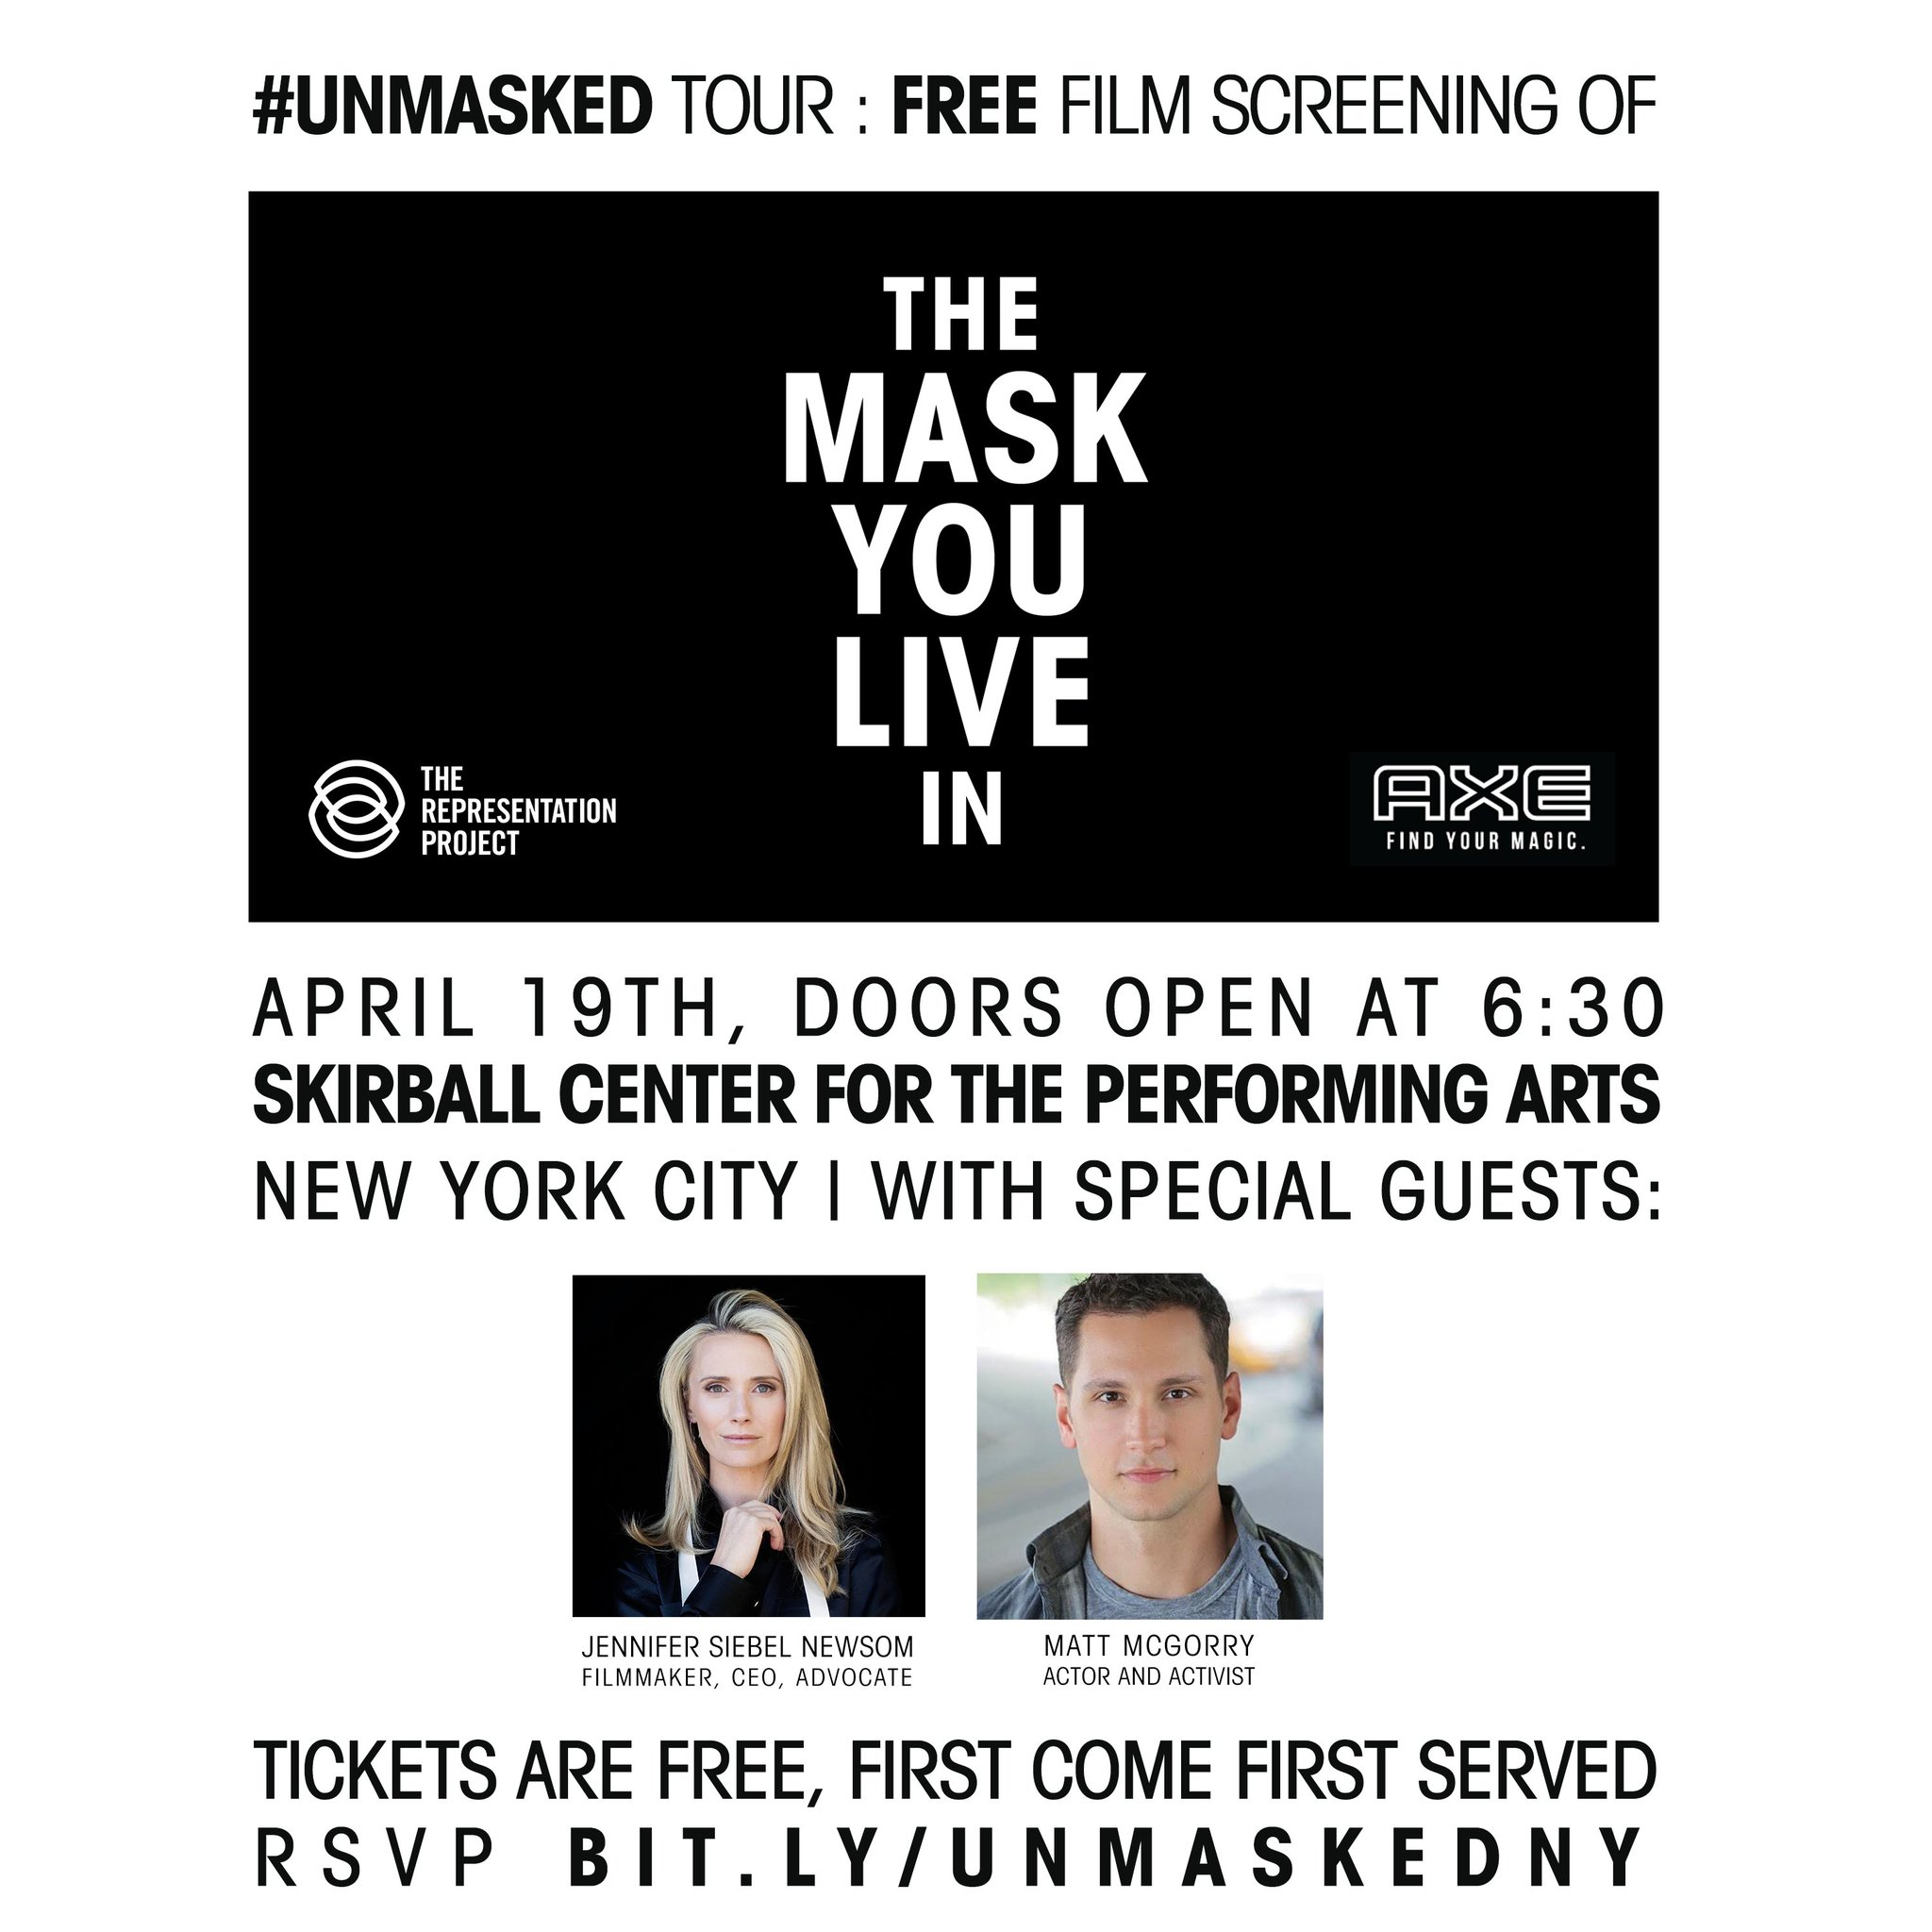 """Thumbnail for Matt McGorry Joins The Representation Project for NYC Launch of #Unmasked : """"The Mask You Live In"""" Global Tour"""